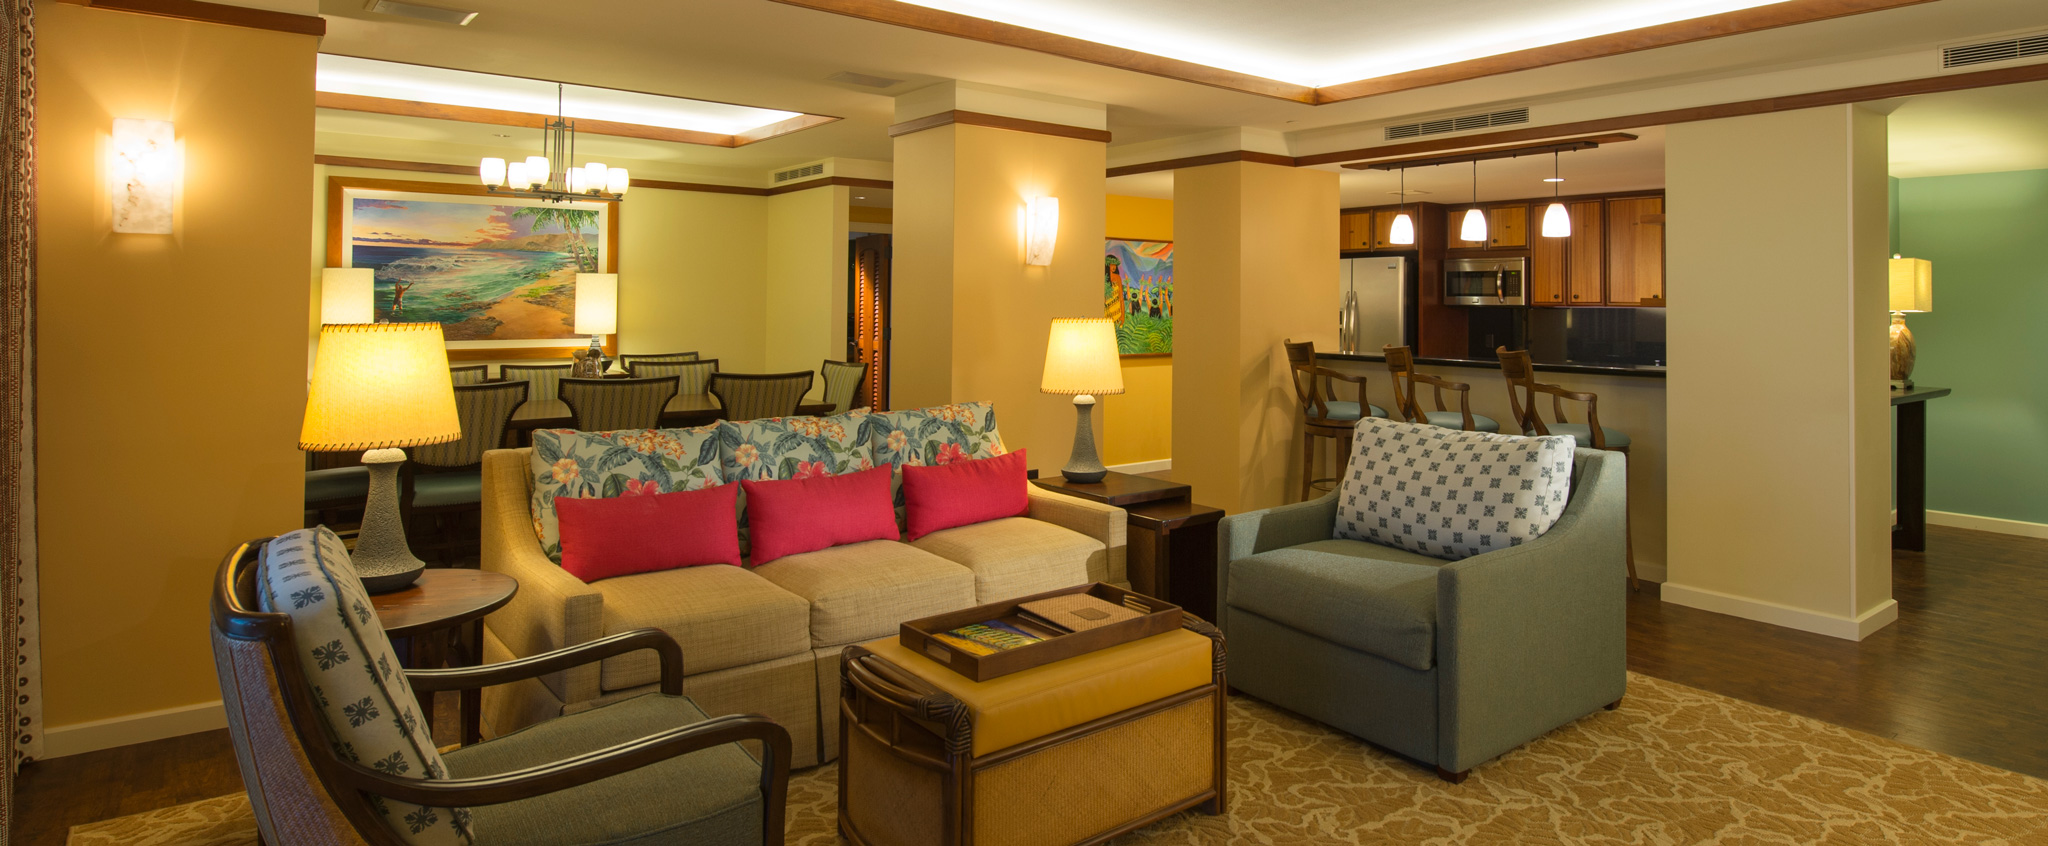 Three Bedroom Grand Villa | Aulani Hawaii Resort & Spa